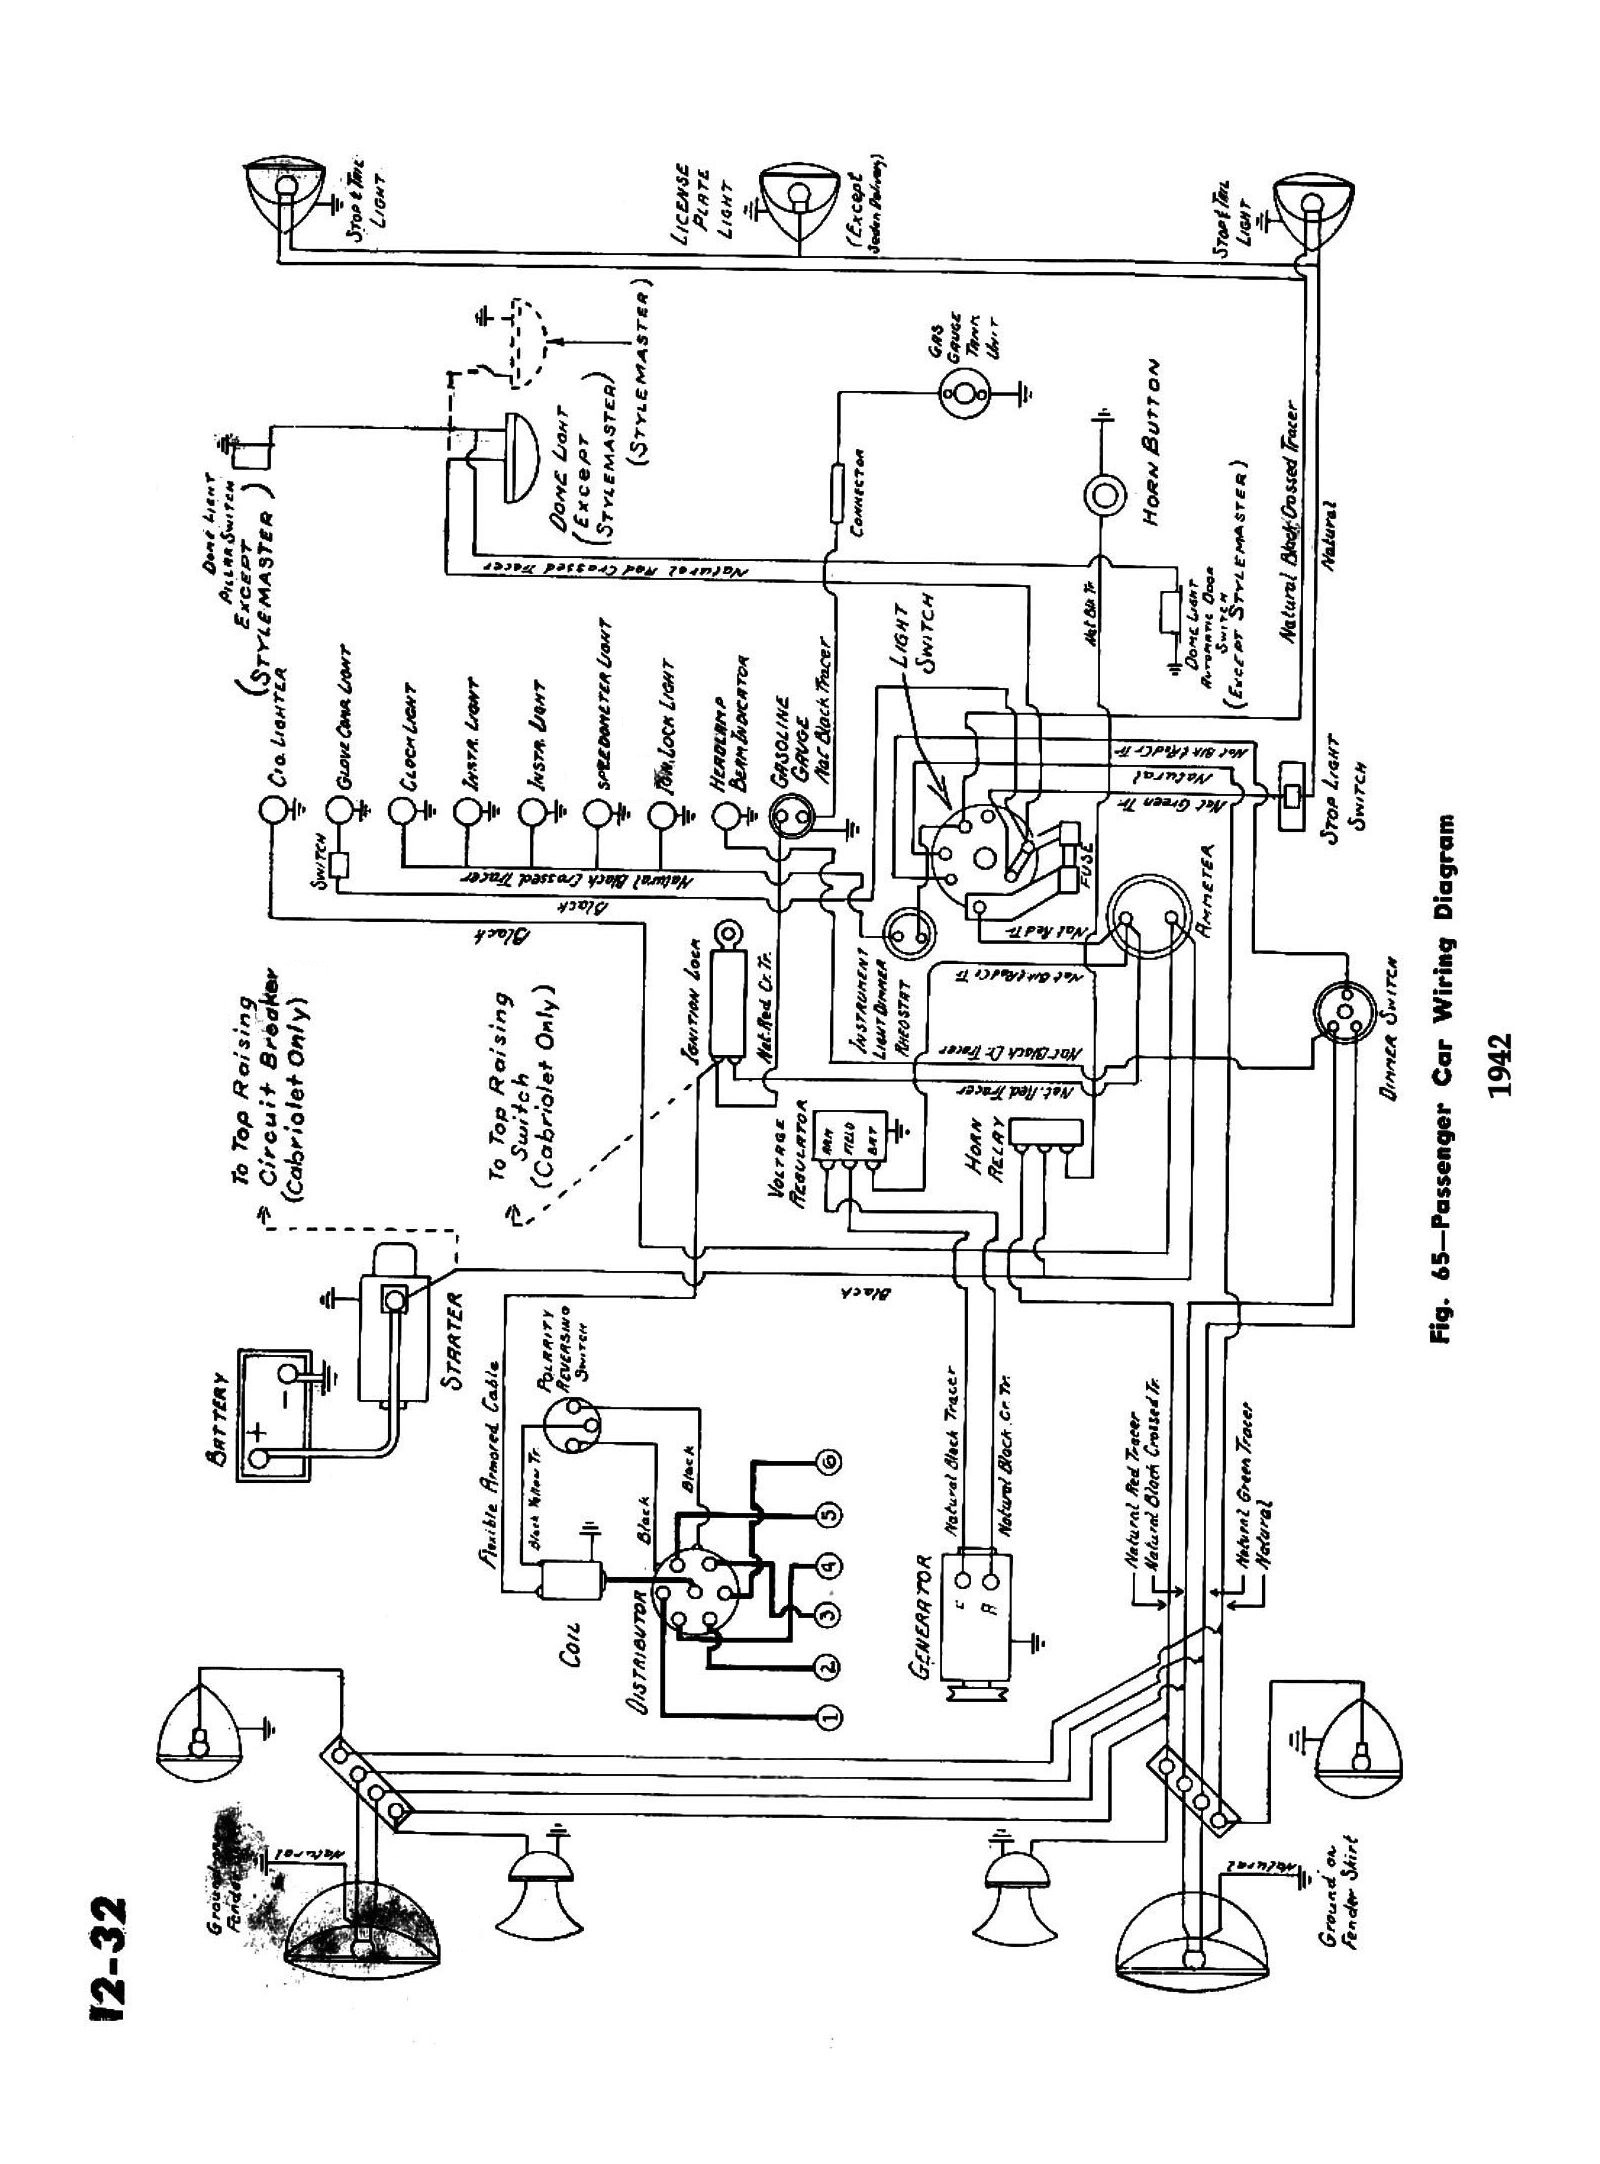 Chevy Wiring Diagrams 2004 Gmc Sierra Horn Diagram 1942 Passenger Car